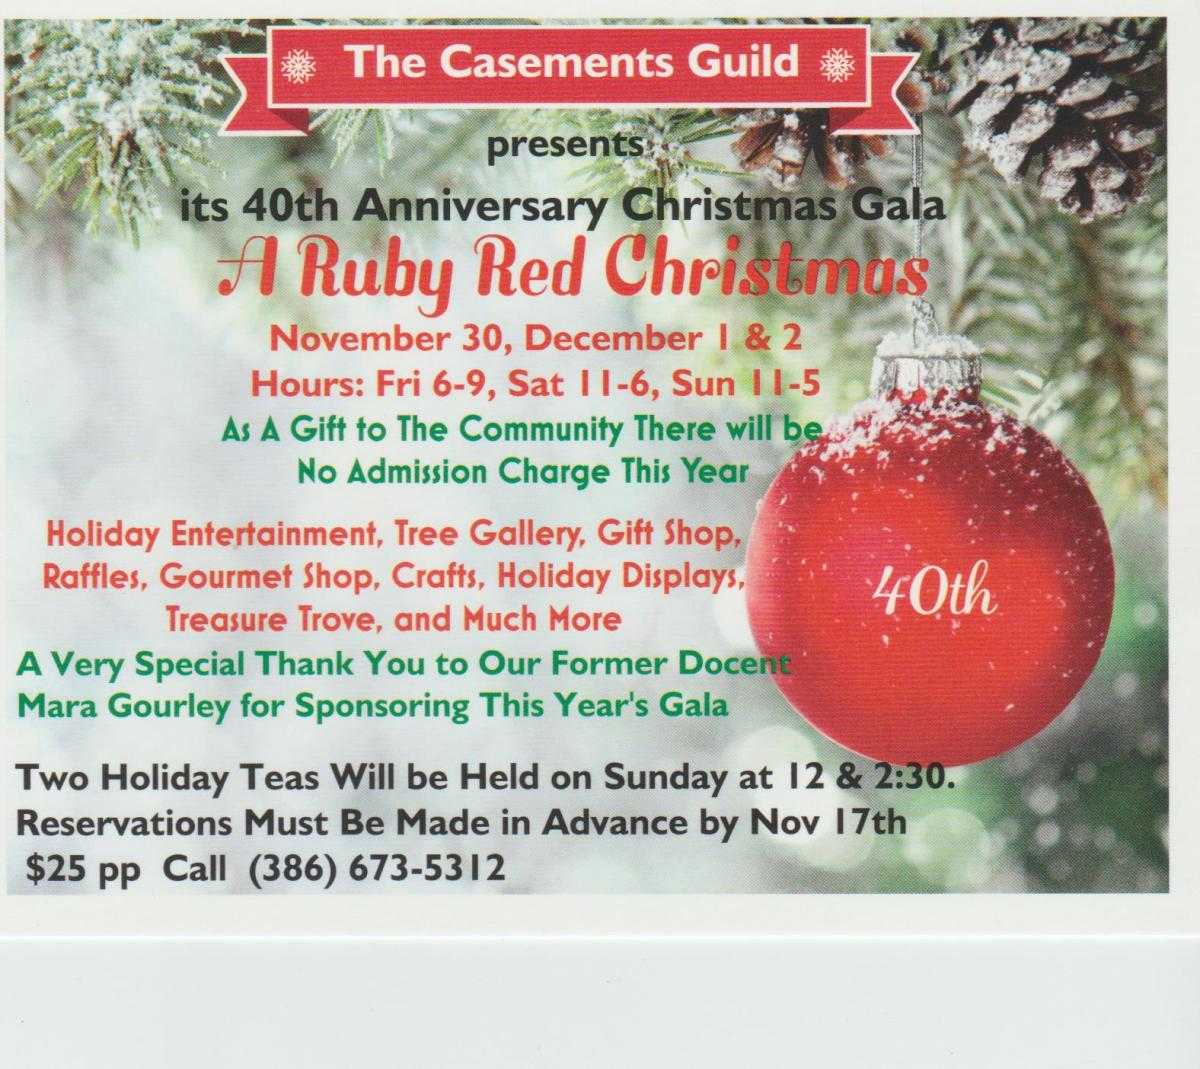 a ruby red christmas gala at the casements - And This Christmas Will Be A Very Special Christmas